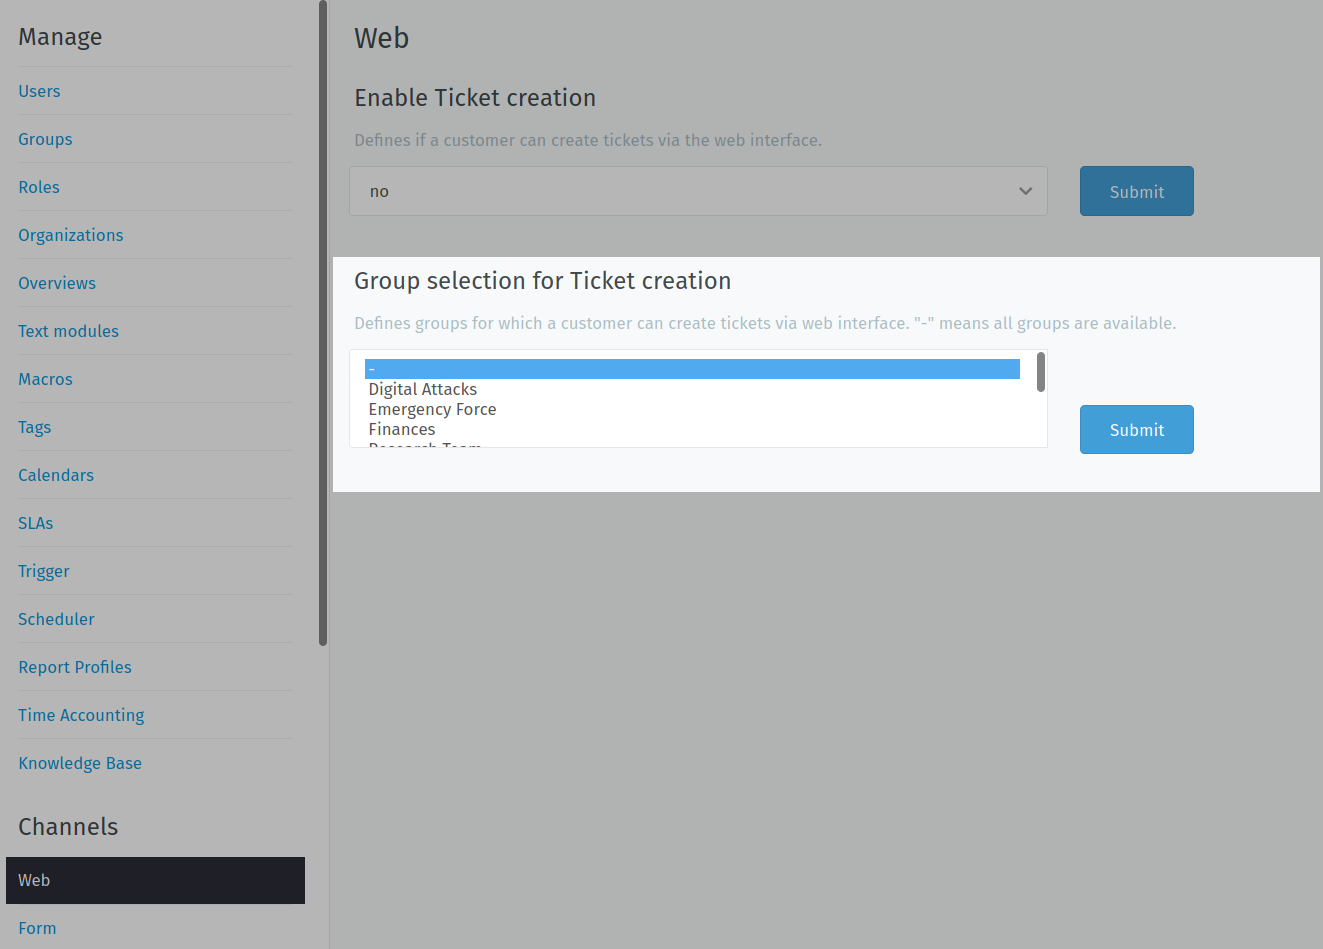 Specifying a group to be associated with a web channel in CDR Link